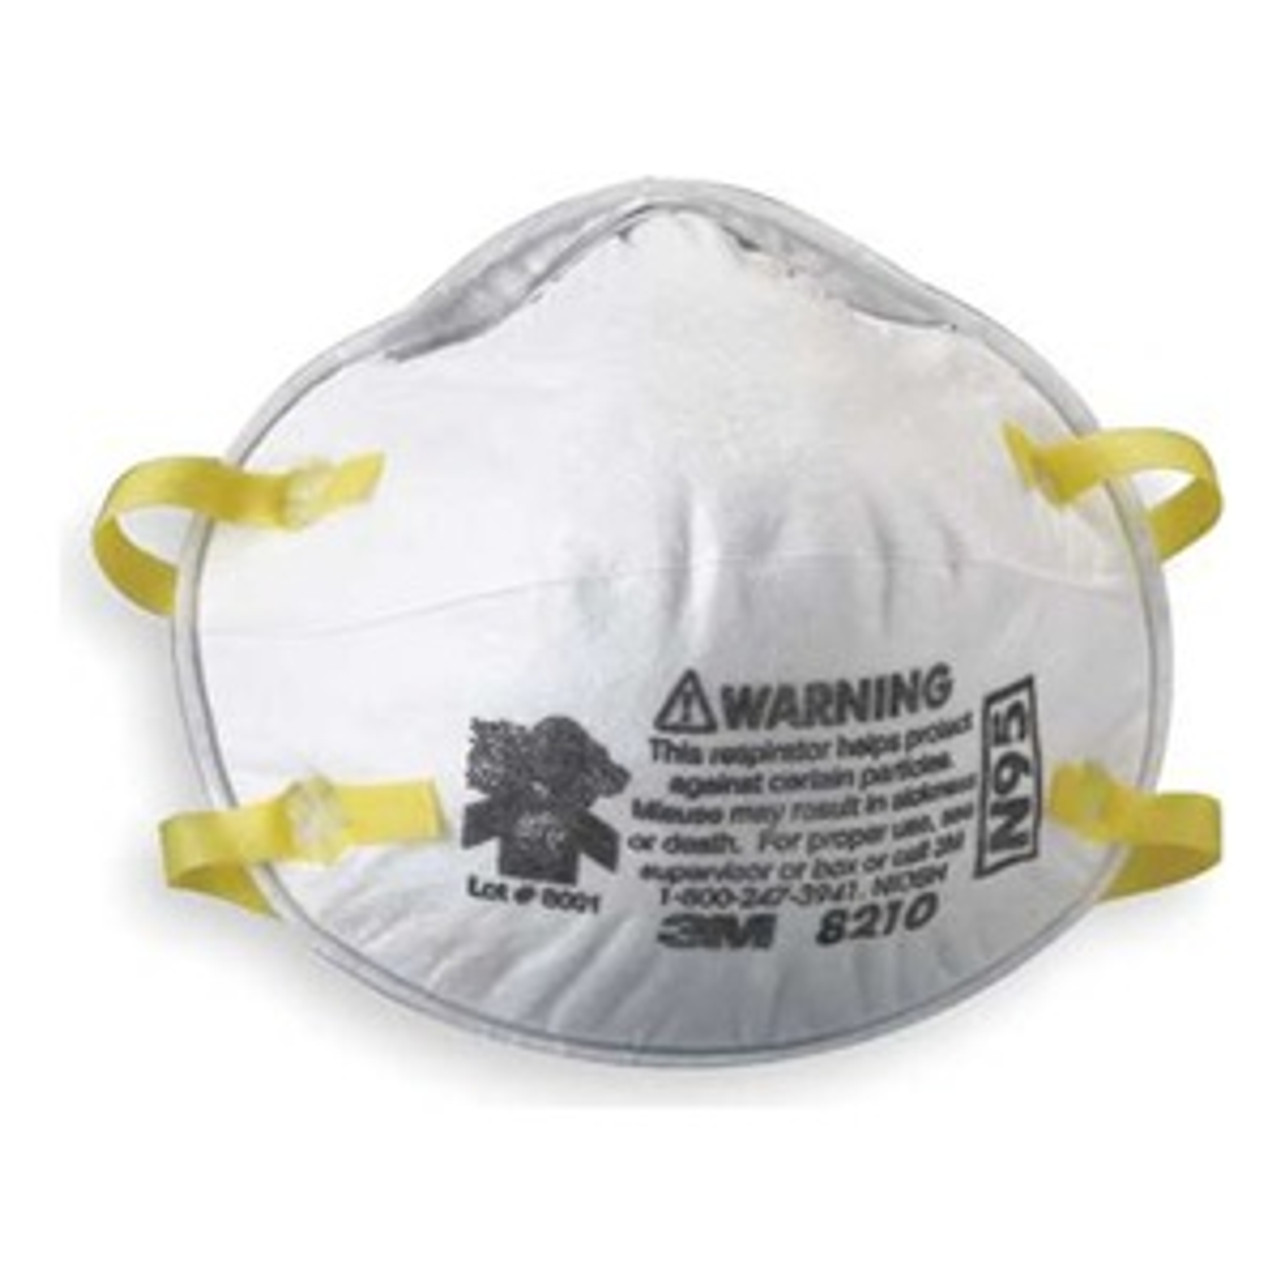 Supply Safety Mask 8210 20 Dust 3m Jendco Particulate N95 Masks -